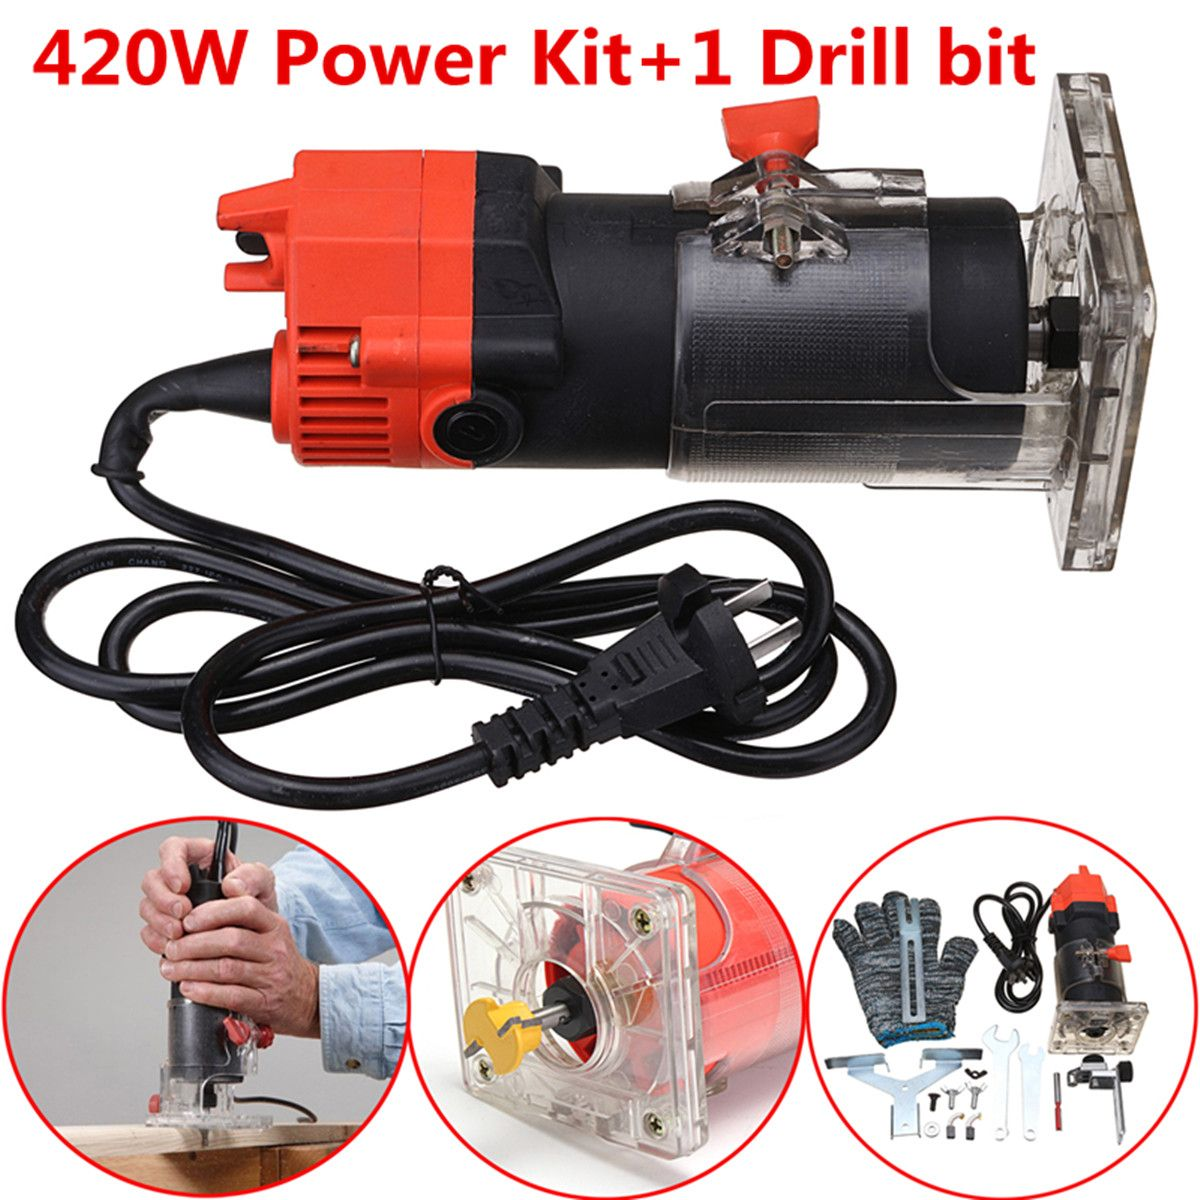 420W 220V Electric Edge Trimmer 30000RPM Multi Function Woodworking Machine Wood Edge Cutter/Router Set + Wrench Gloves420W 220V Electric Edge Trimmer 30000RPM Multi Function Woodworking Machine Wood Edge Cutter/Router Set + Wrench Gloves